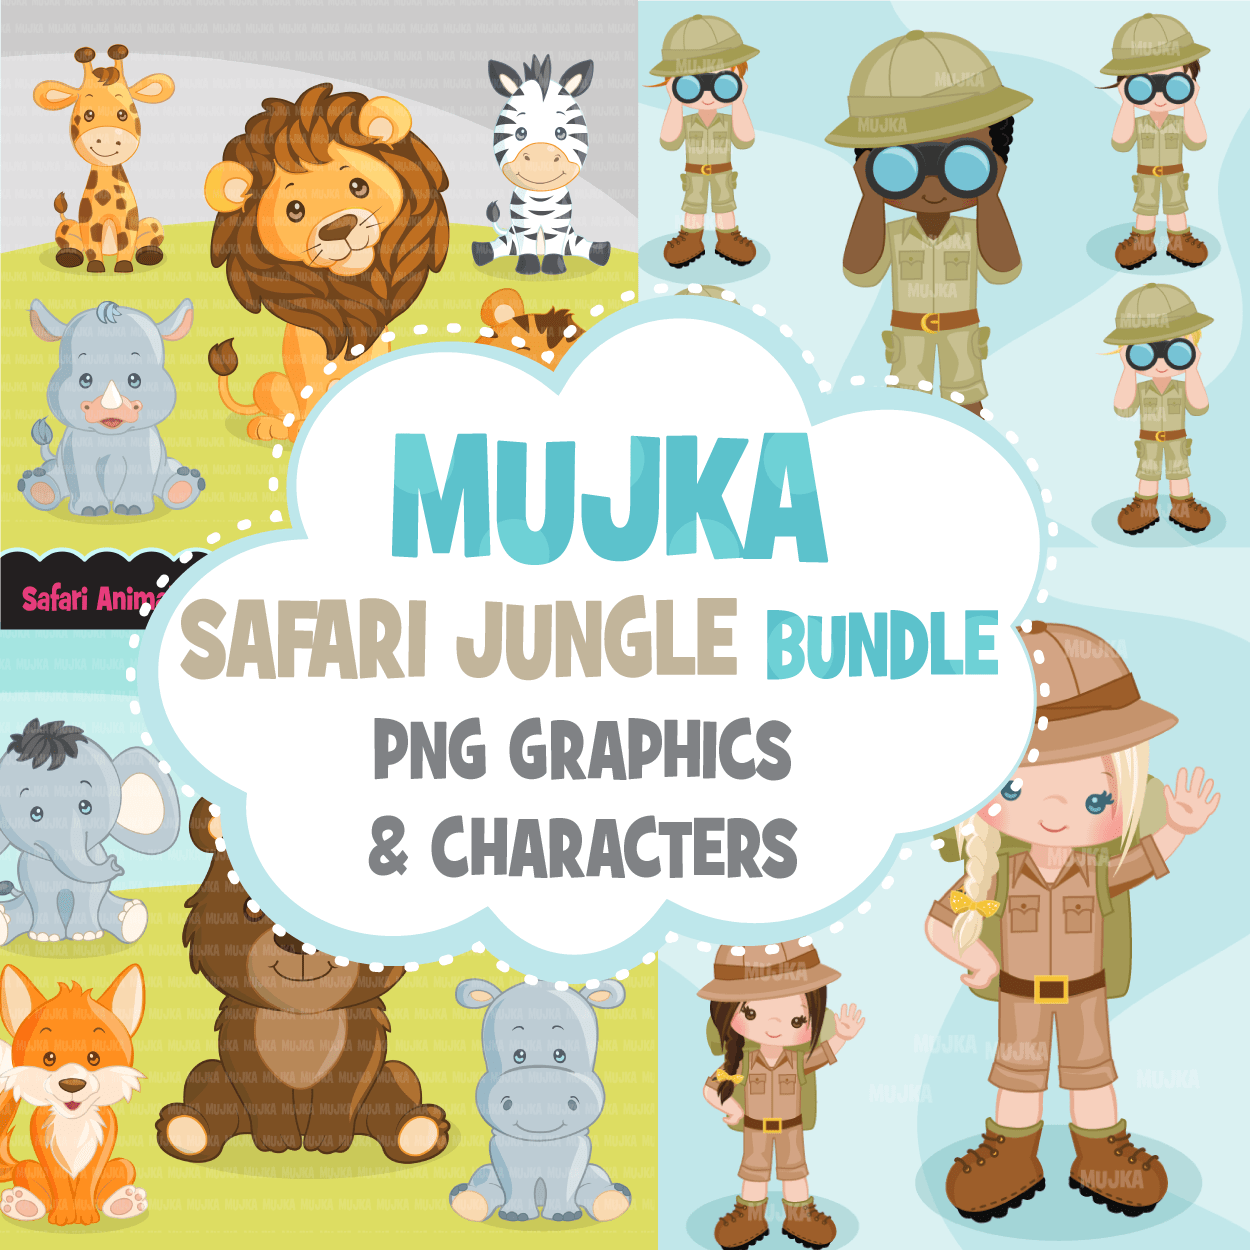 Safari clipart Bundle. Collection of safari animals, safari characters and graphics, lion, giraffe, hippo, zebra, monkey graphics